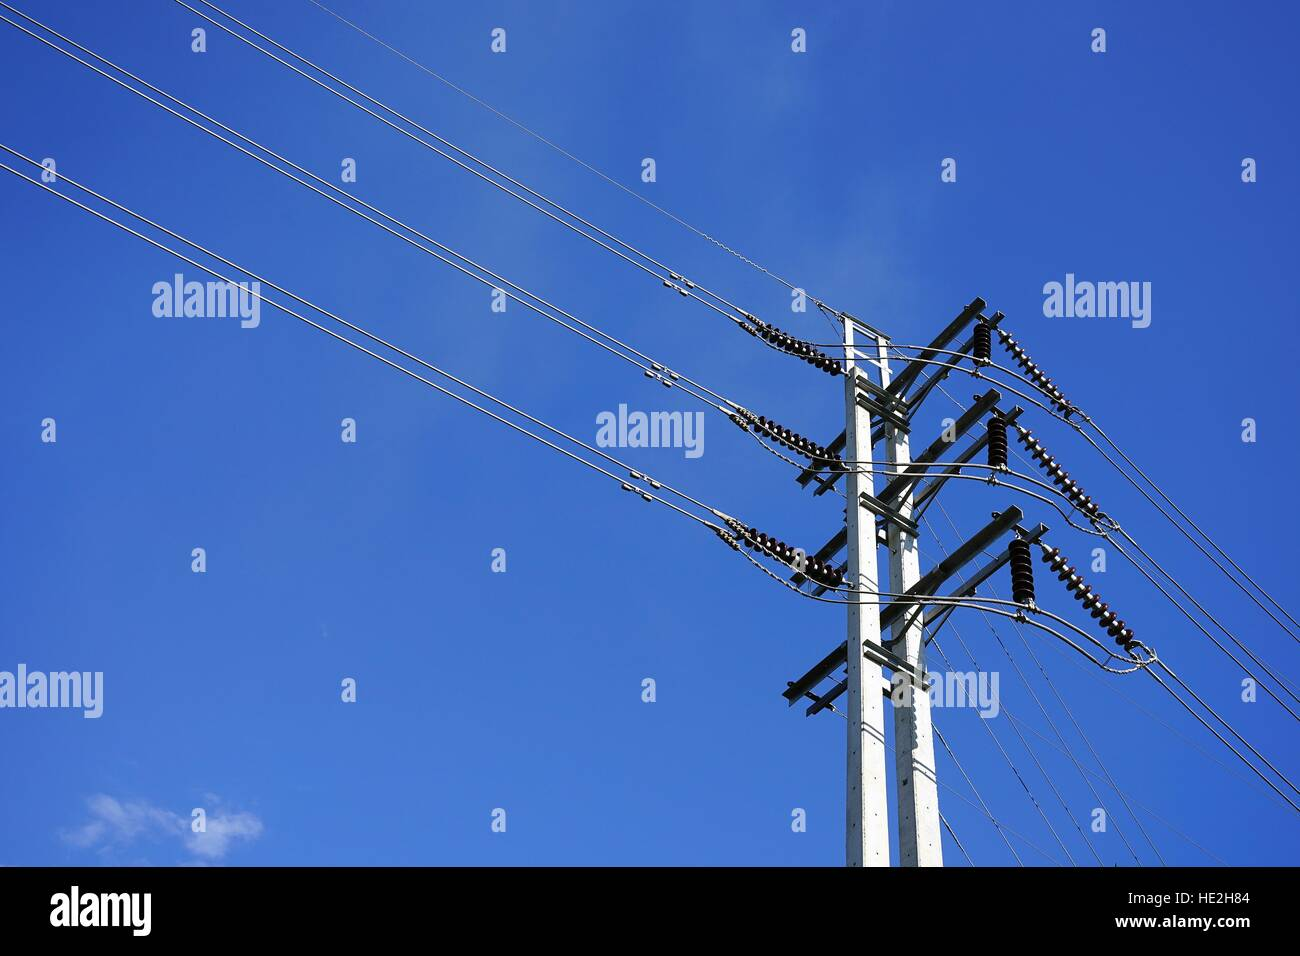 High voltage electric post with power line cables against blue sky - Stock Image